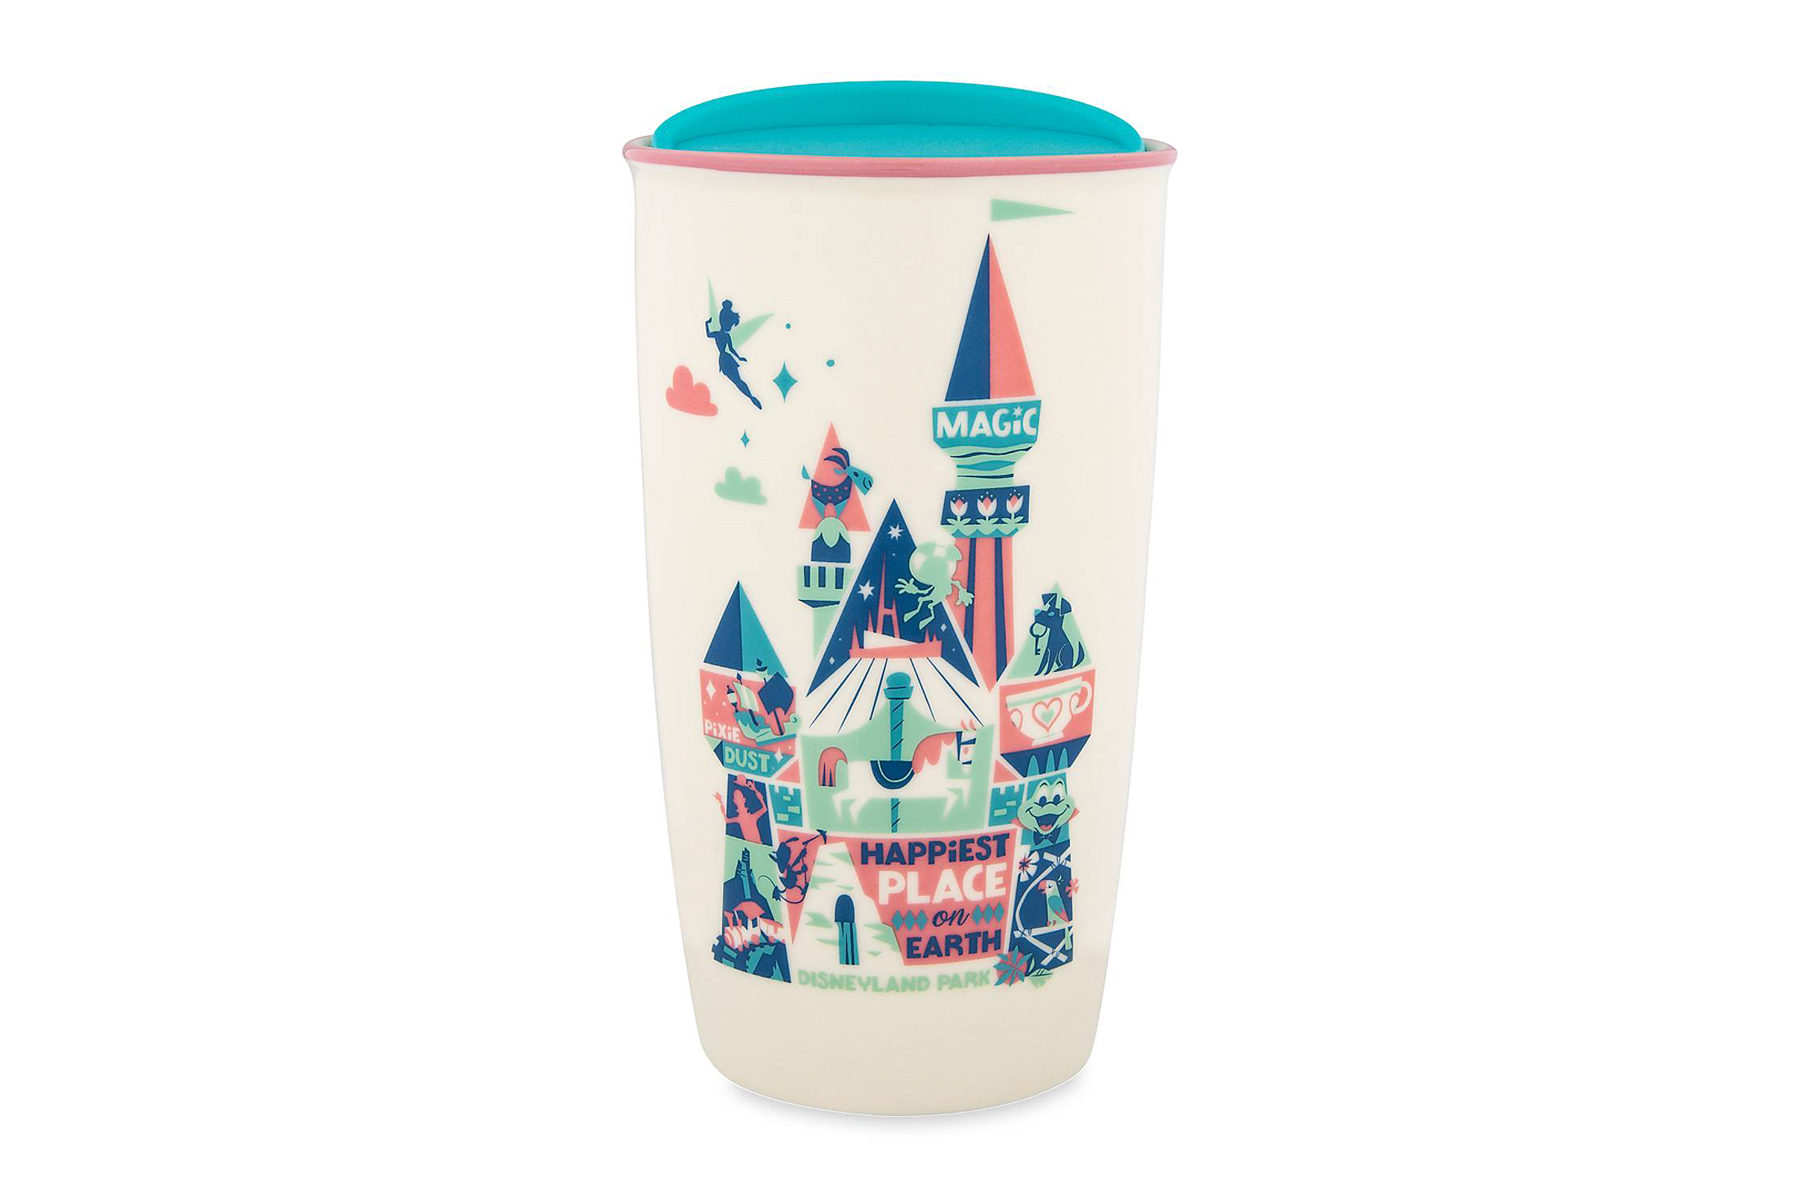 Disney Starbucks mug showing pink and turquoise illustrations with a vintage look